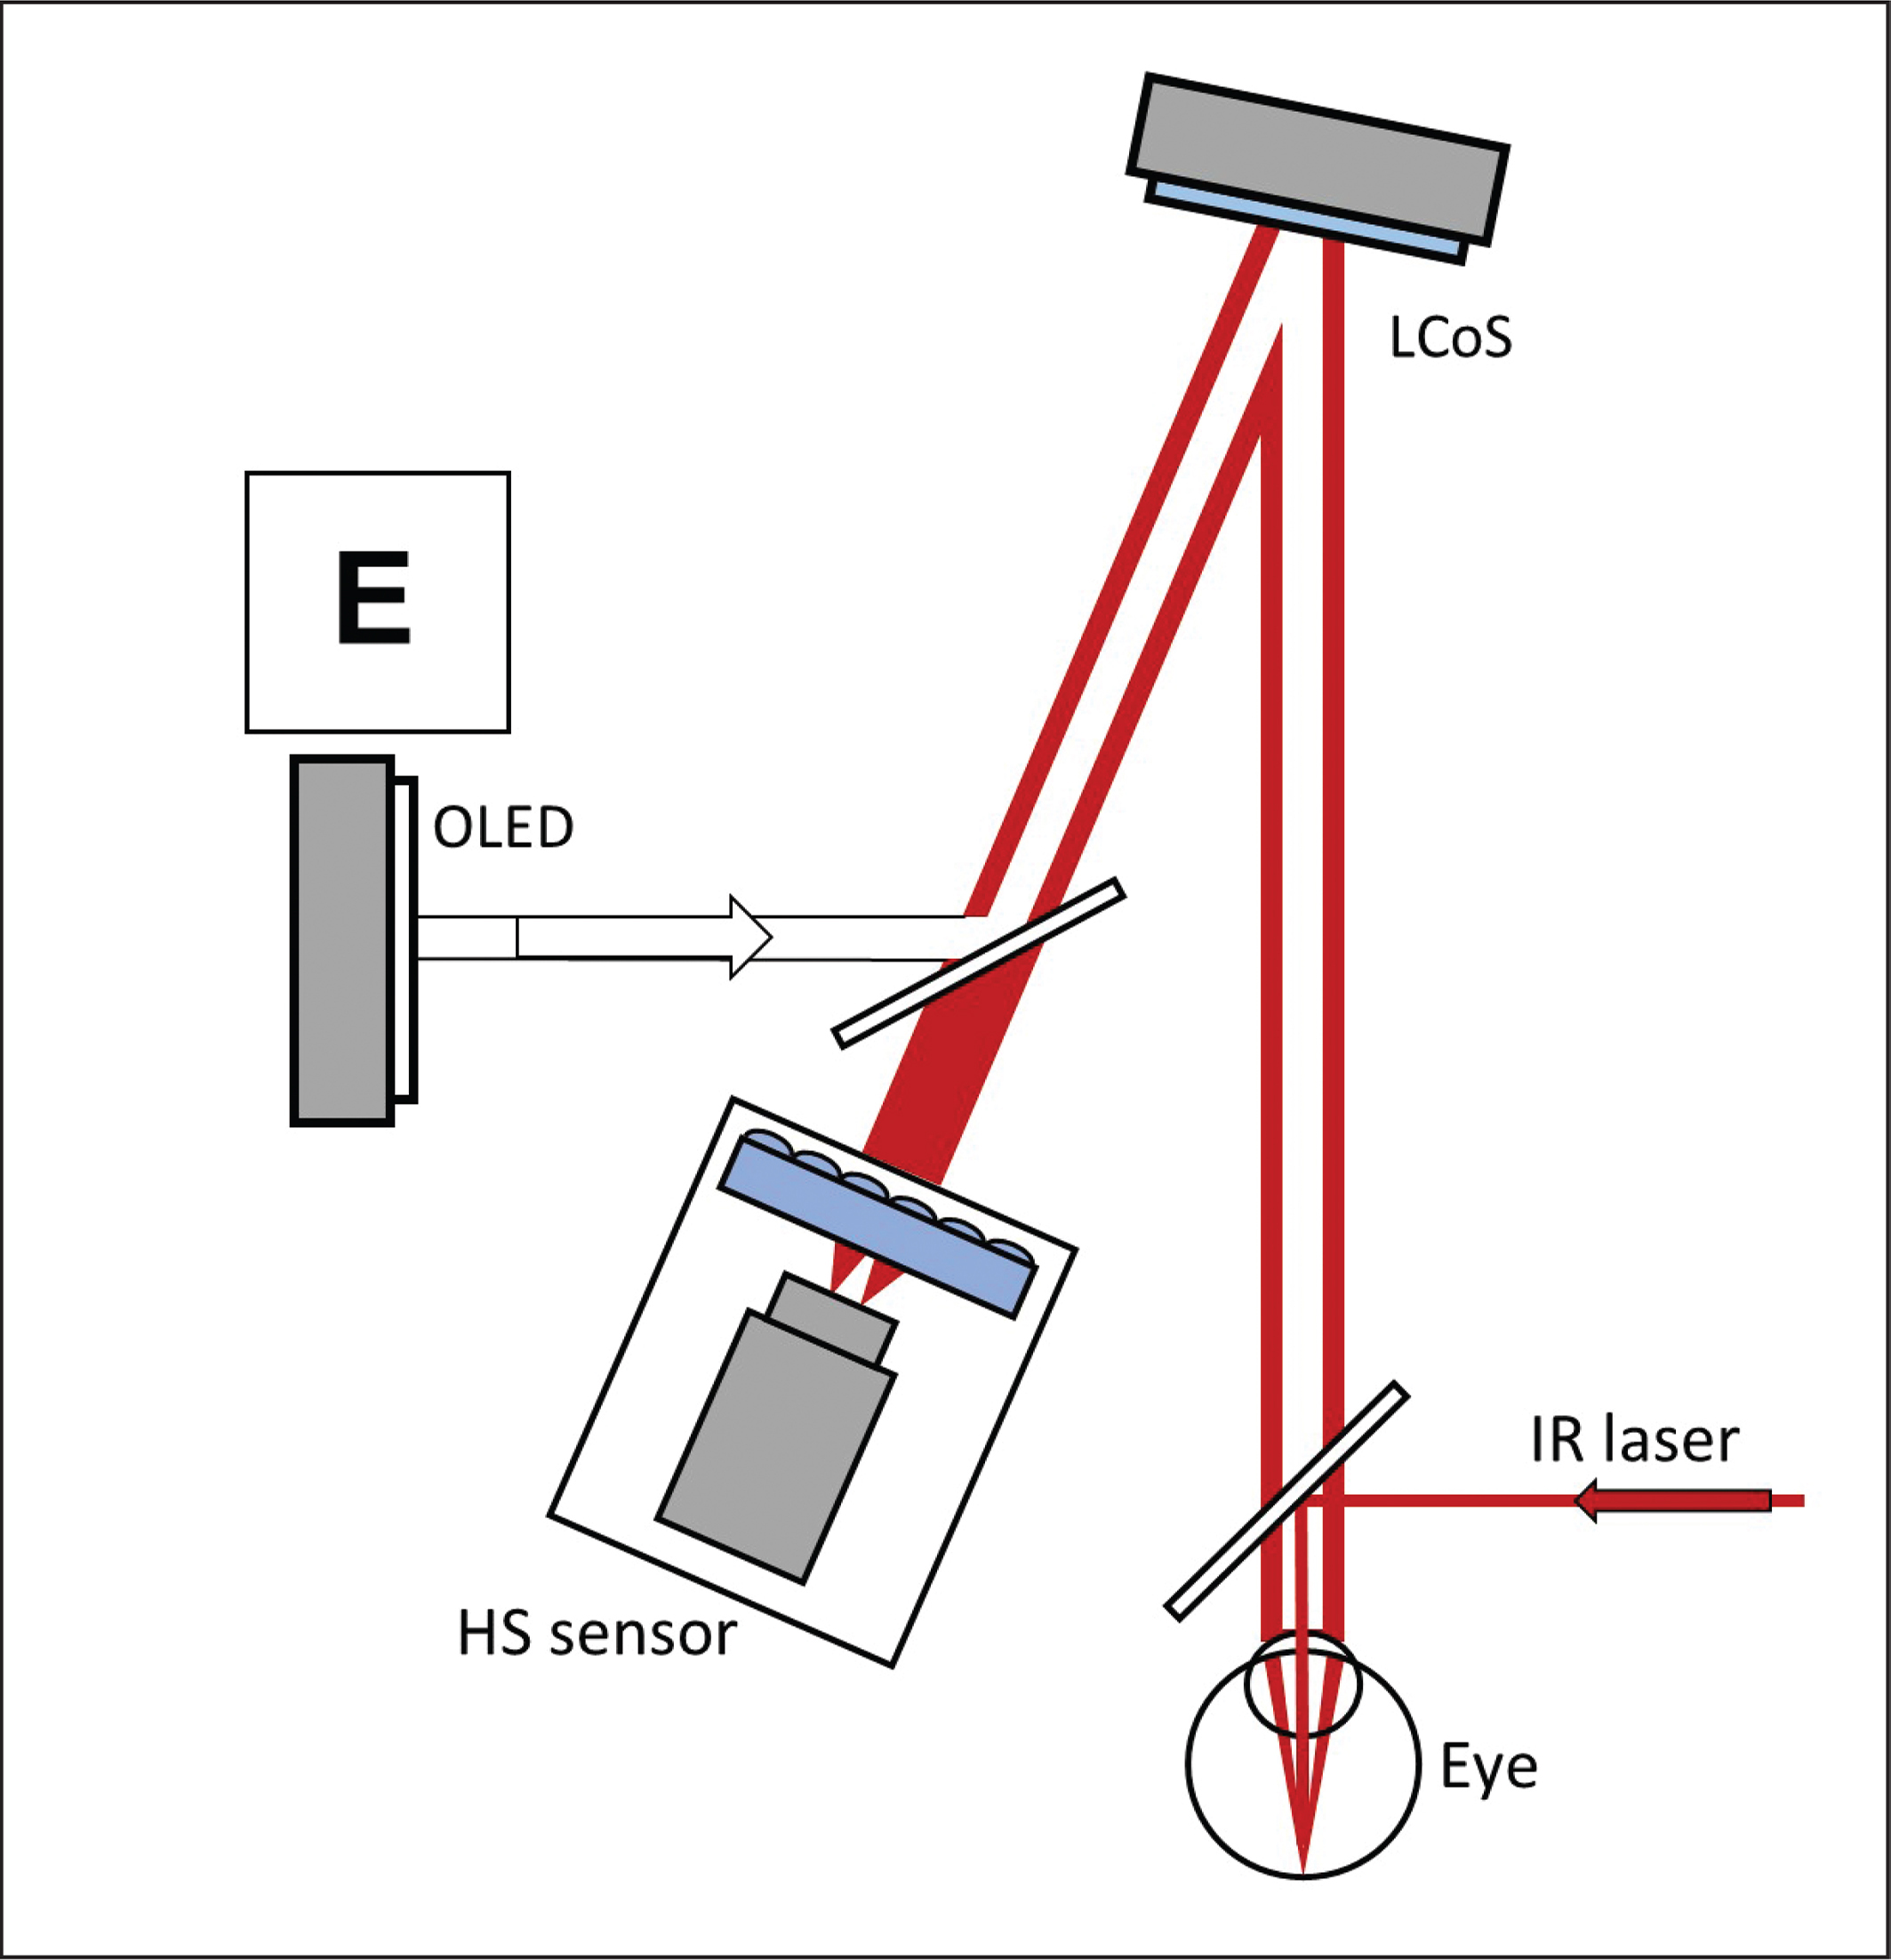 Optical scheme of VAO instrument (Voptica, SL, Murcia, Spain). A Hartmann-Shack (HS) system is used to measure the ocular aberrations with a 780-nm laser beam (IR LED). A spatial light modulator (LCoS) induces any optical phase profile while the eye is seeing a visual test displayed by a screen (OLED).